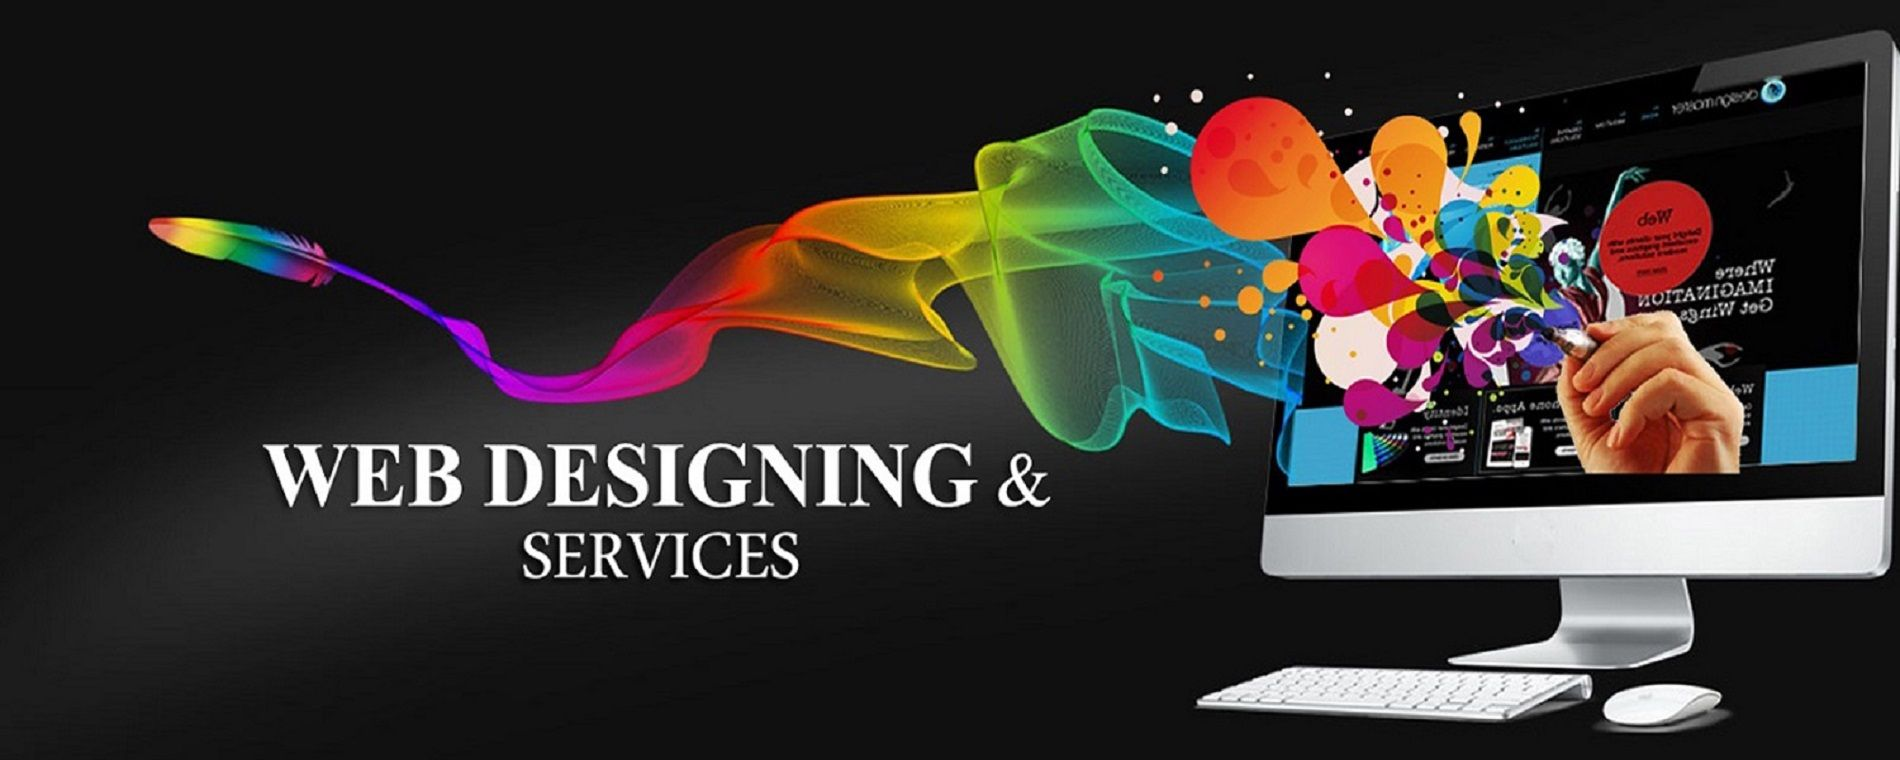 Best Website Design Development Company In Australia Website Design Services Website Design Company Fun Website Design